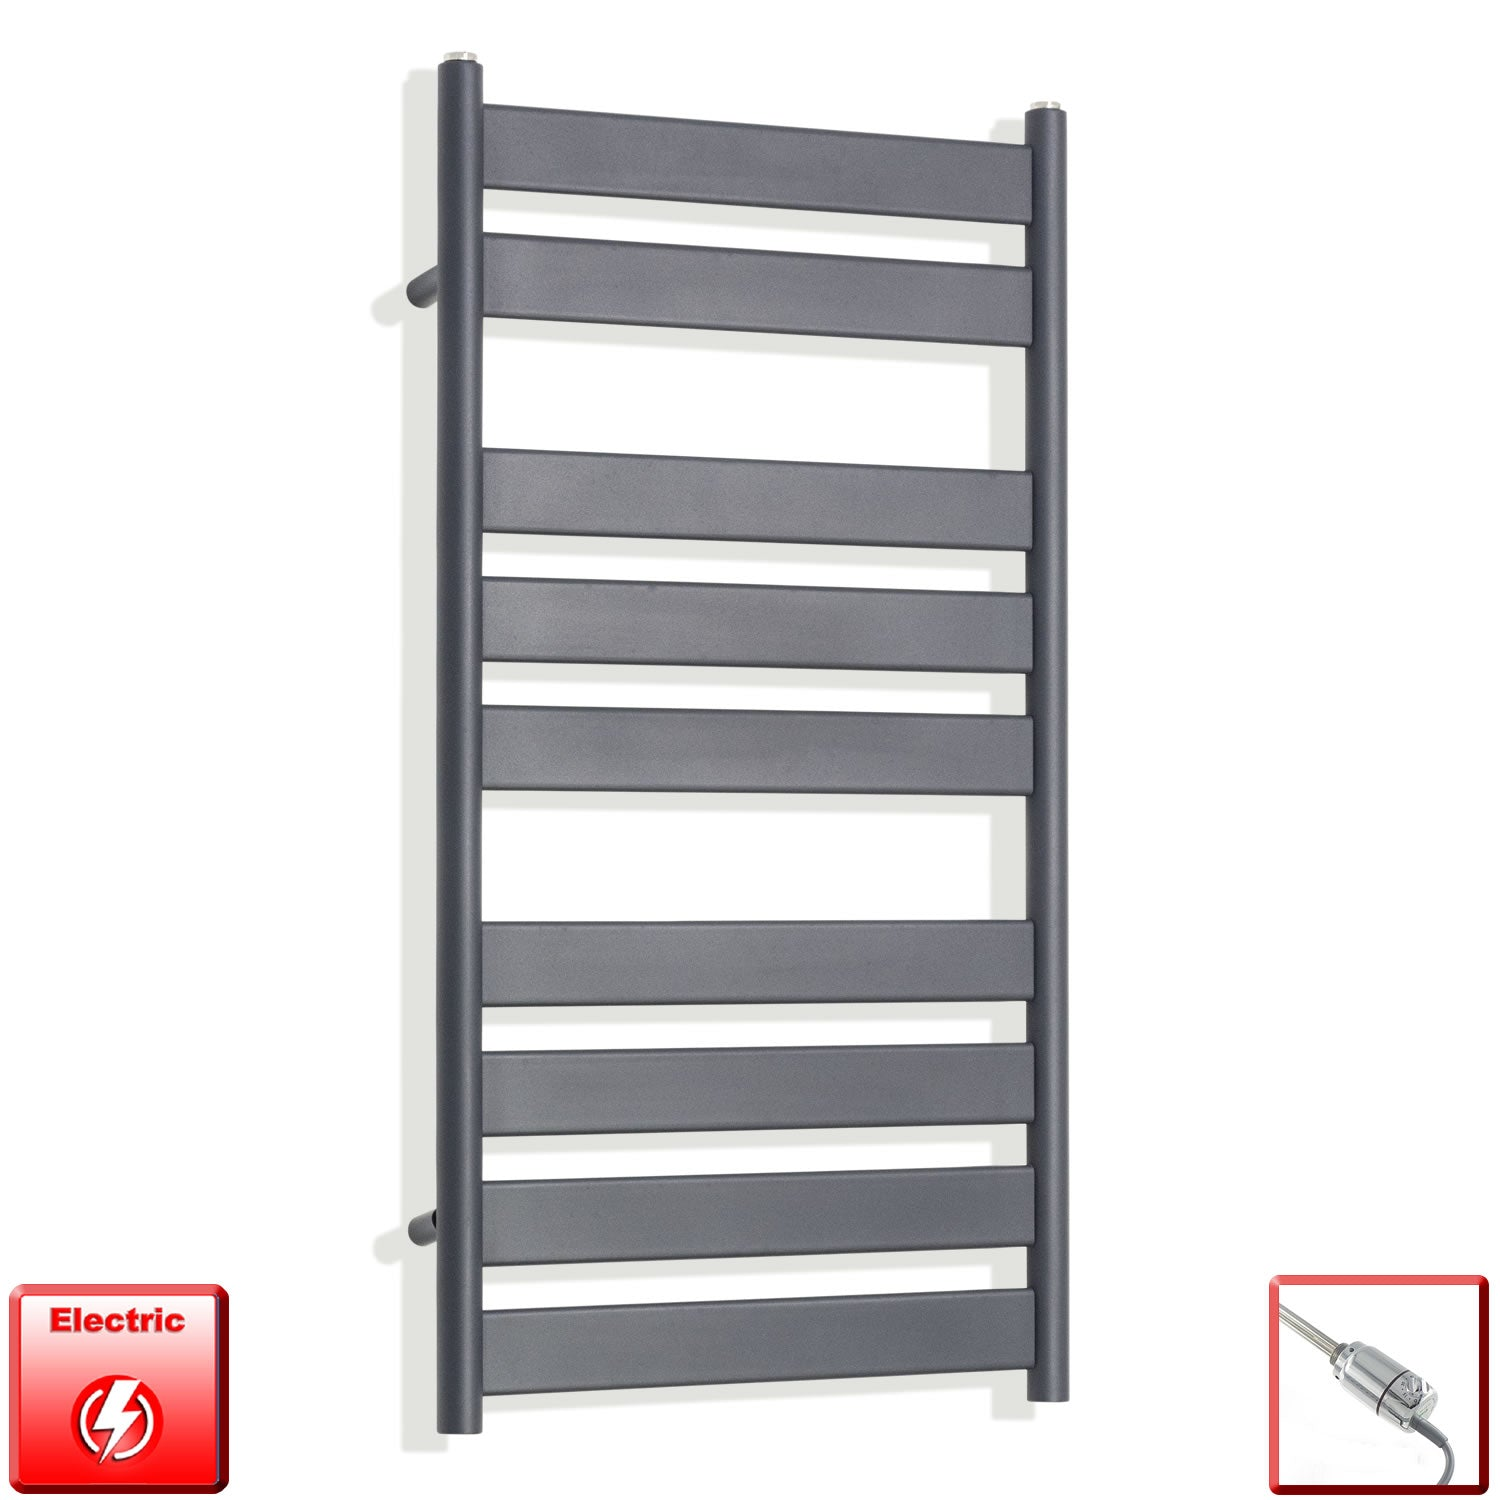 950 x 500 mm Anthracite Heated Flat Panel Towel Rail Radiator Electric pref-filled with thermostatic element